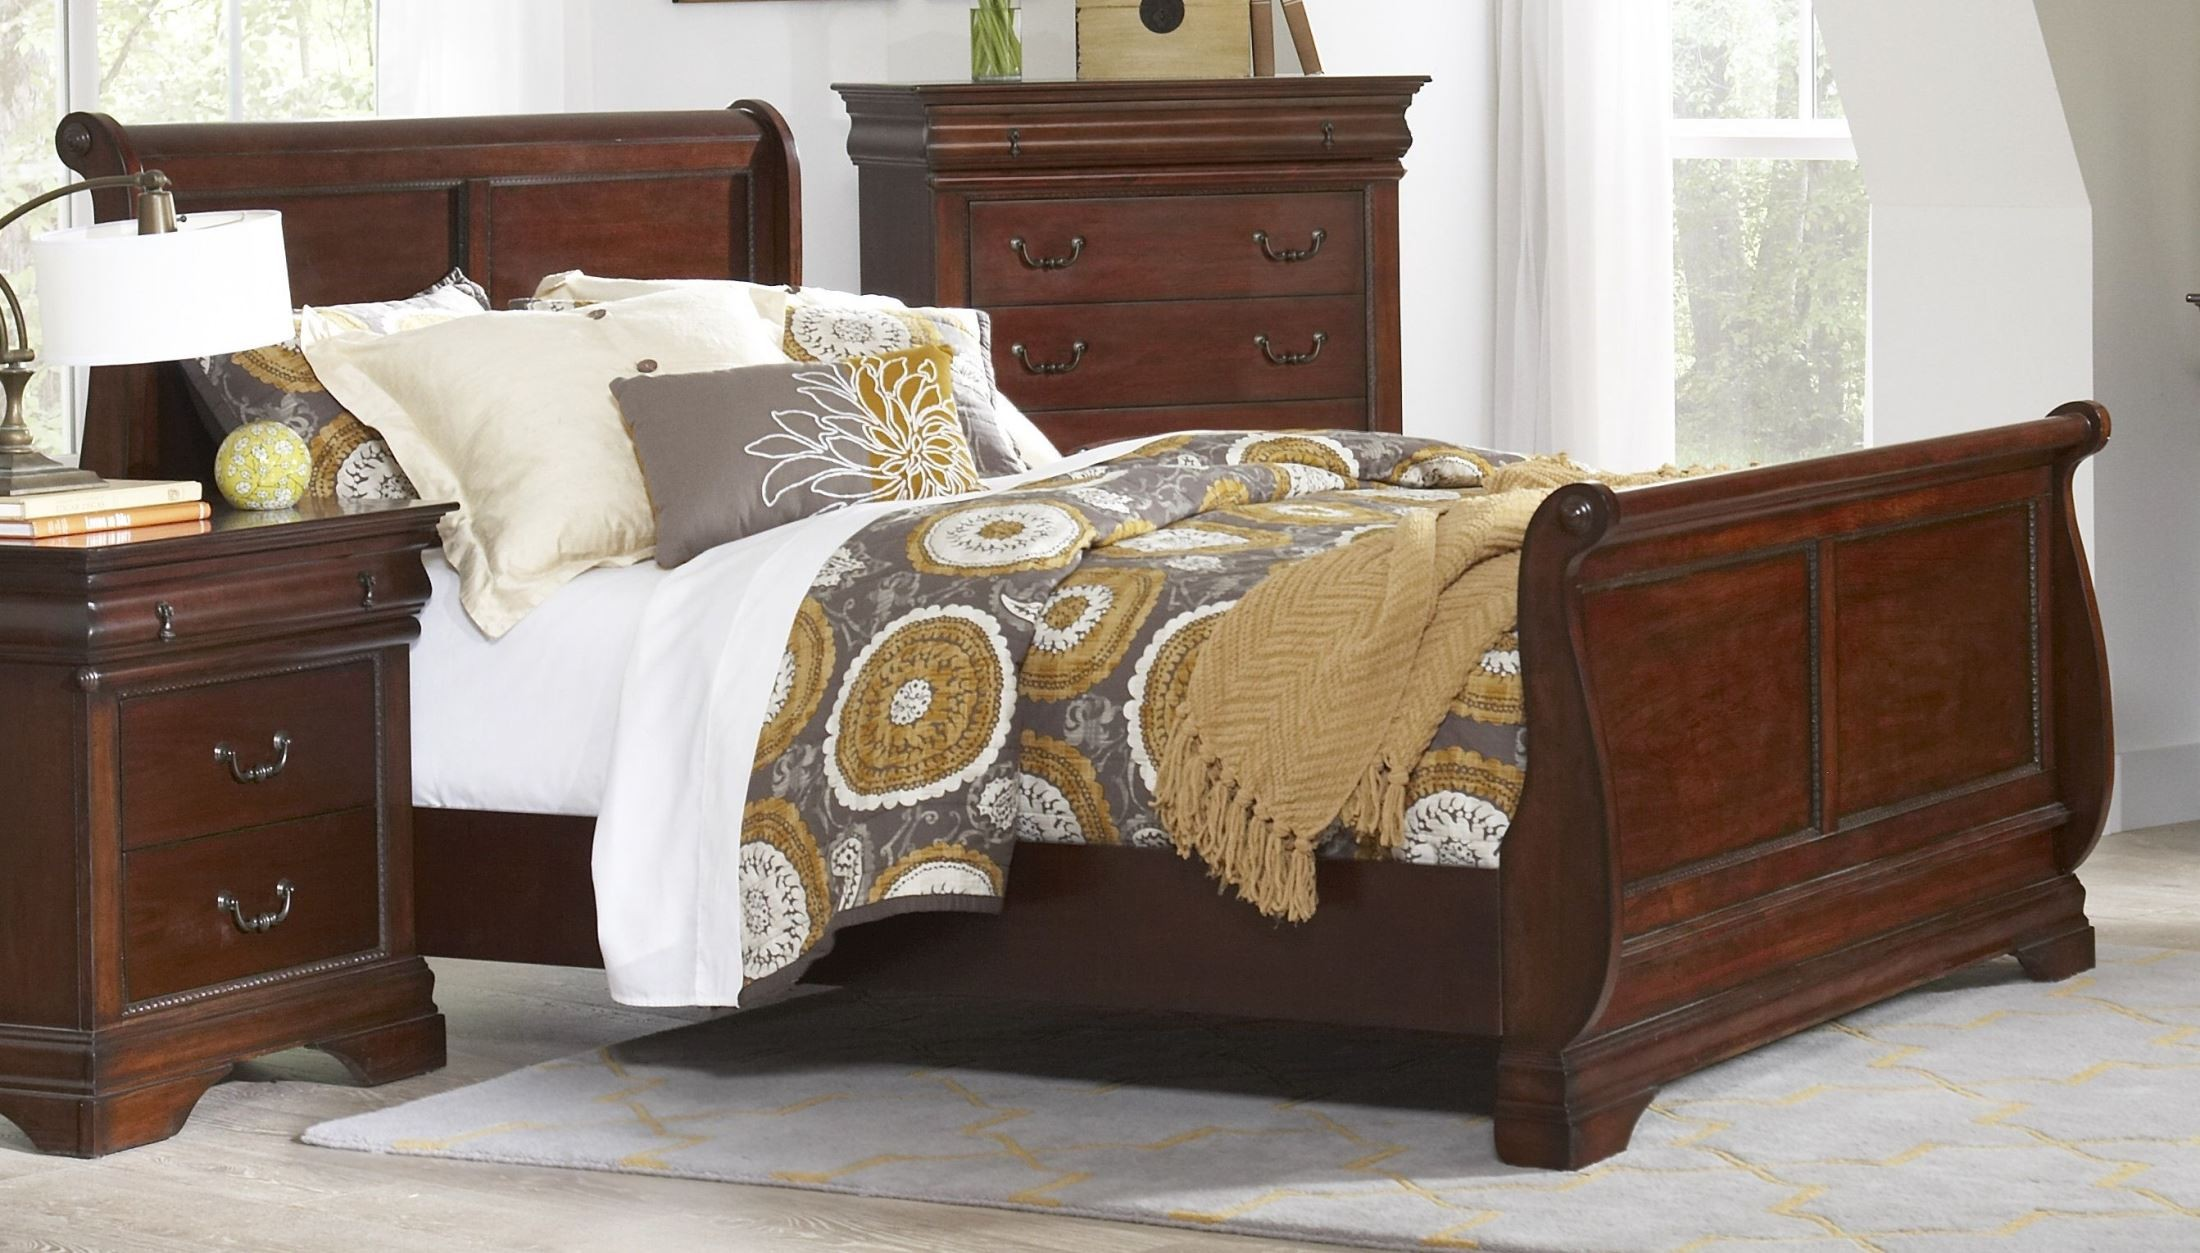 Chateau vintage cherry youth sleigh bedroom set from largo for Chateau beds